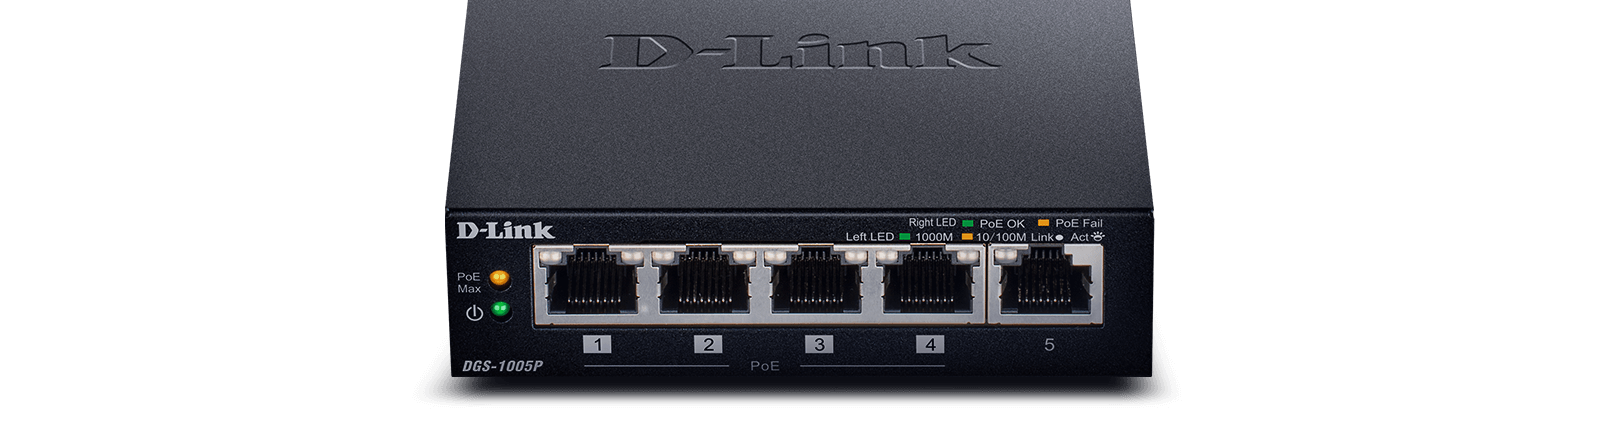 DGS-1005P - 5-Port Desktop Gigabit PoE+ Switch